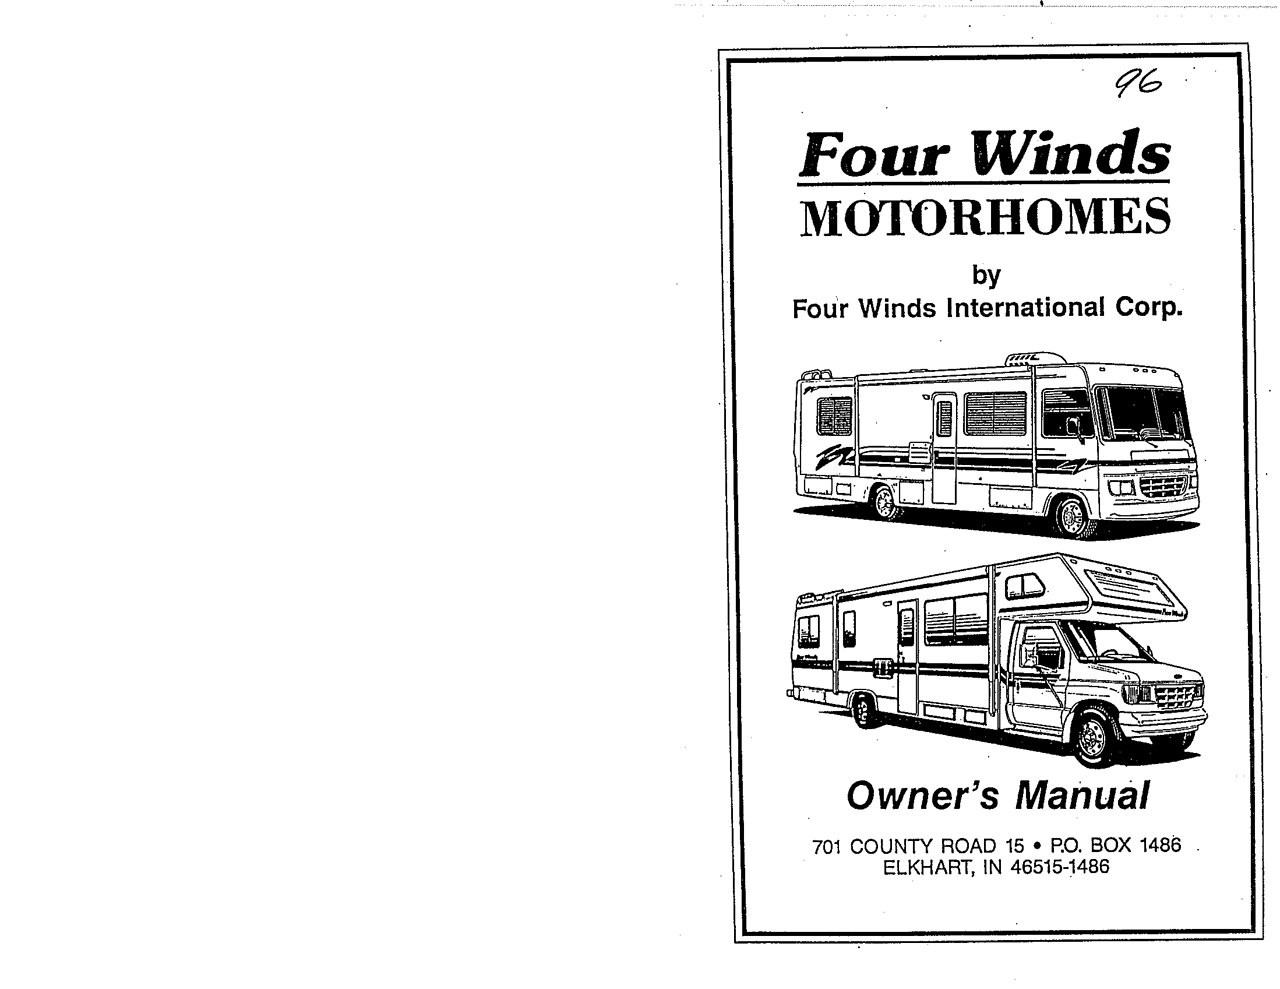 1996 thor four winds owner s manual brochure rv brochures download rh recreationalvehicles info RV Owners ManualsOnline four winds motorhome owners manual